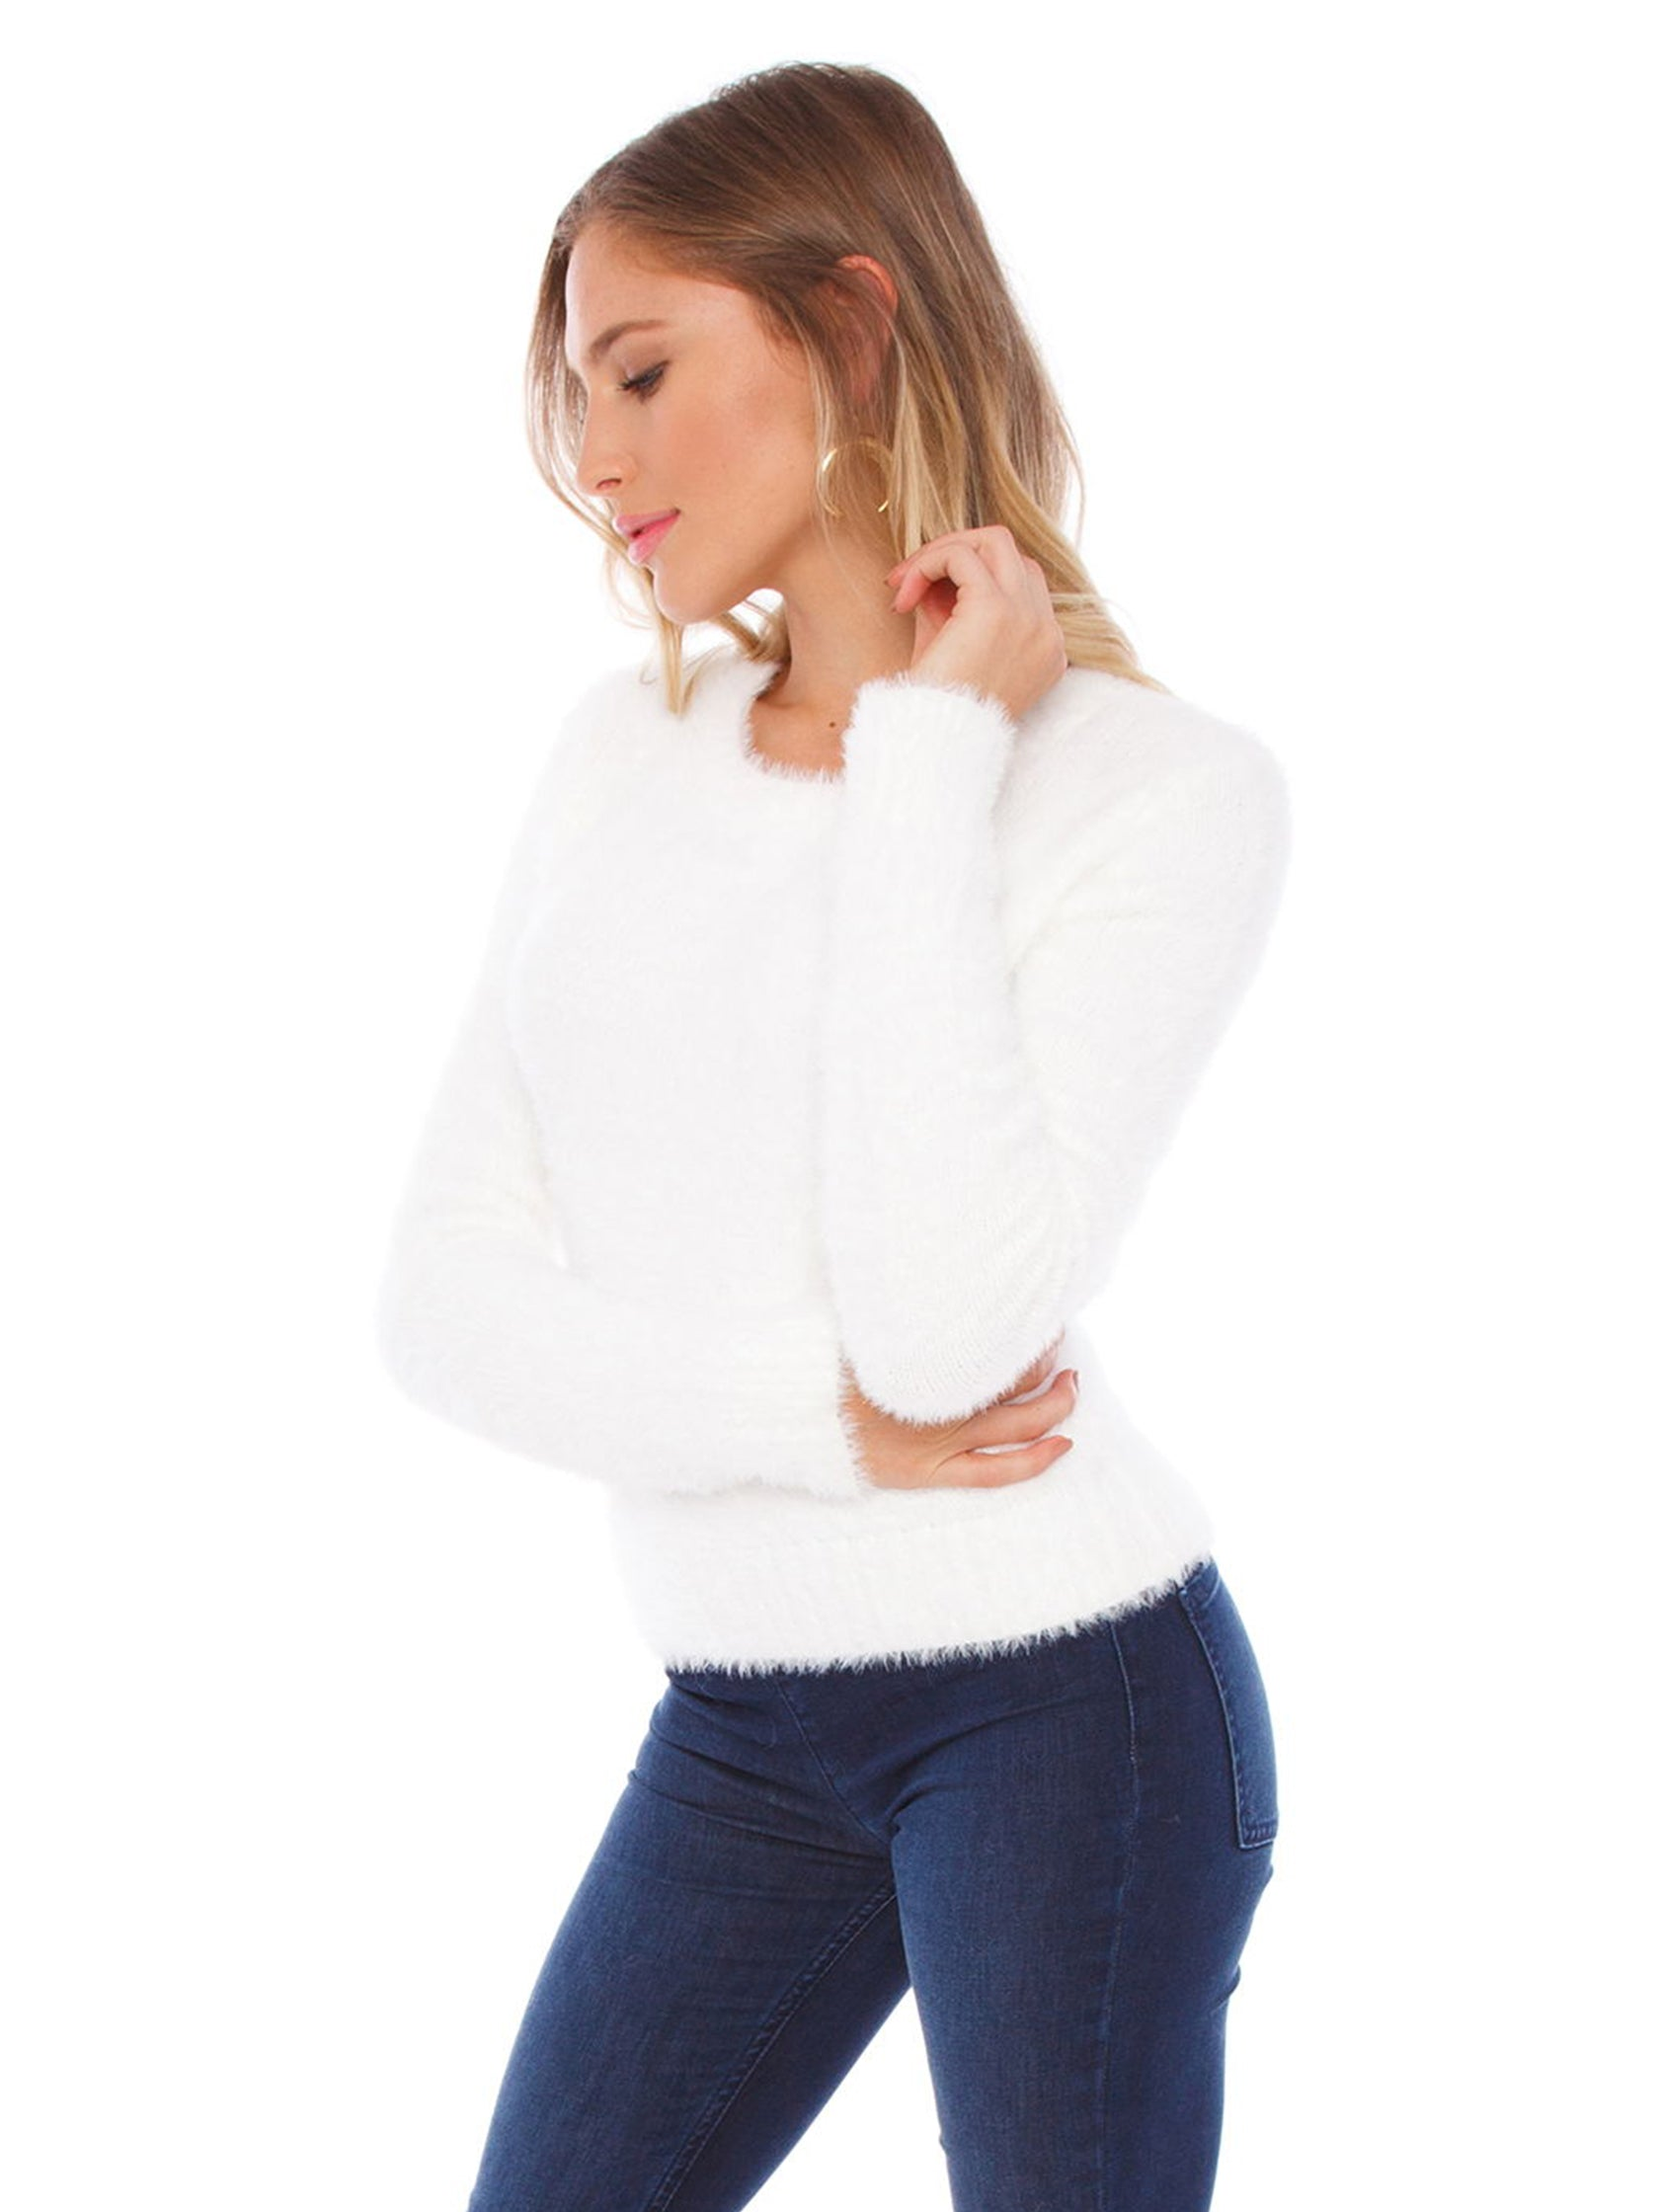 Women wearing a sweater rental from FASHIONPASS called White As Snow Sweater